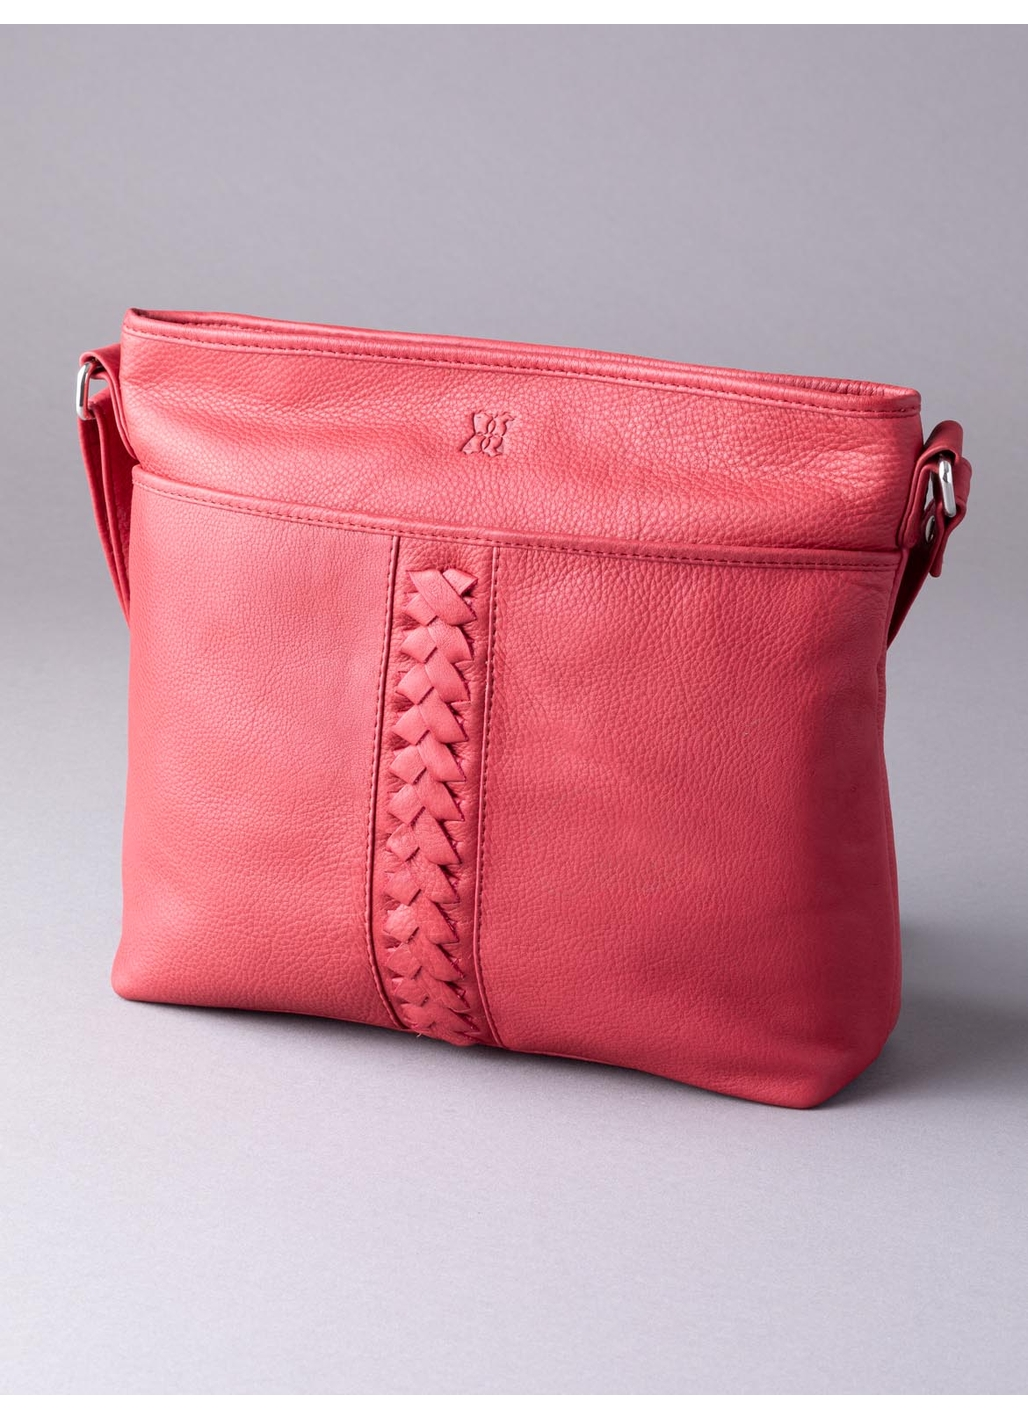 Farlam Leather Cross Body Bag in Red